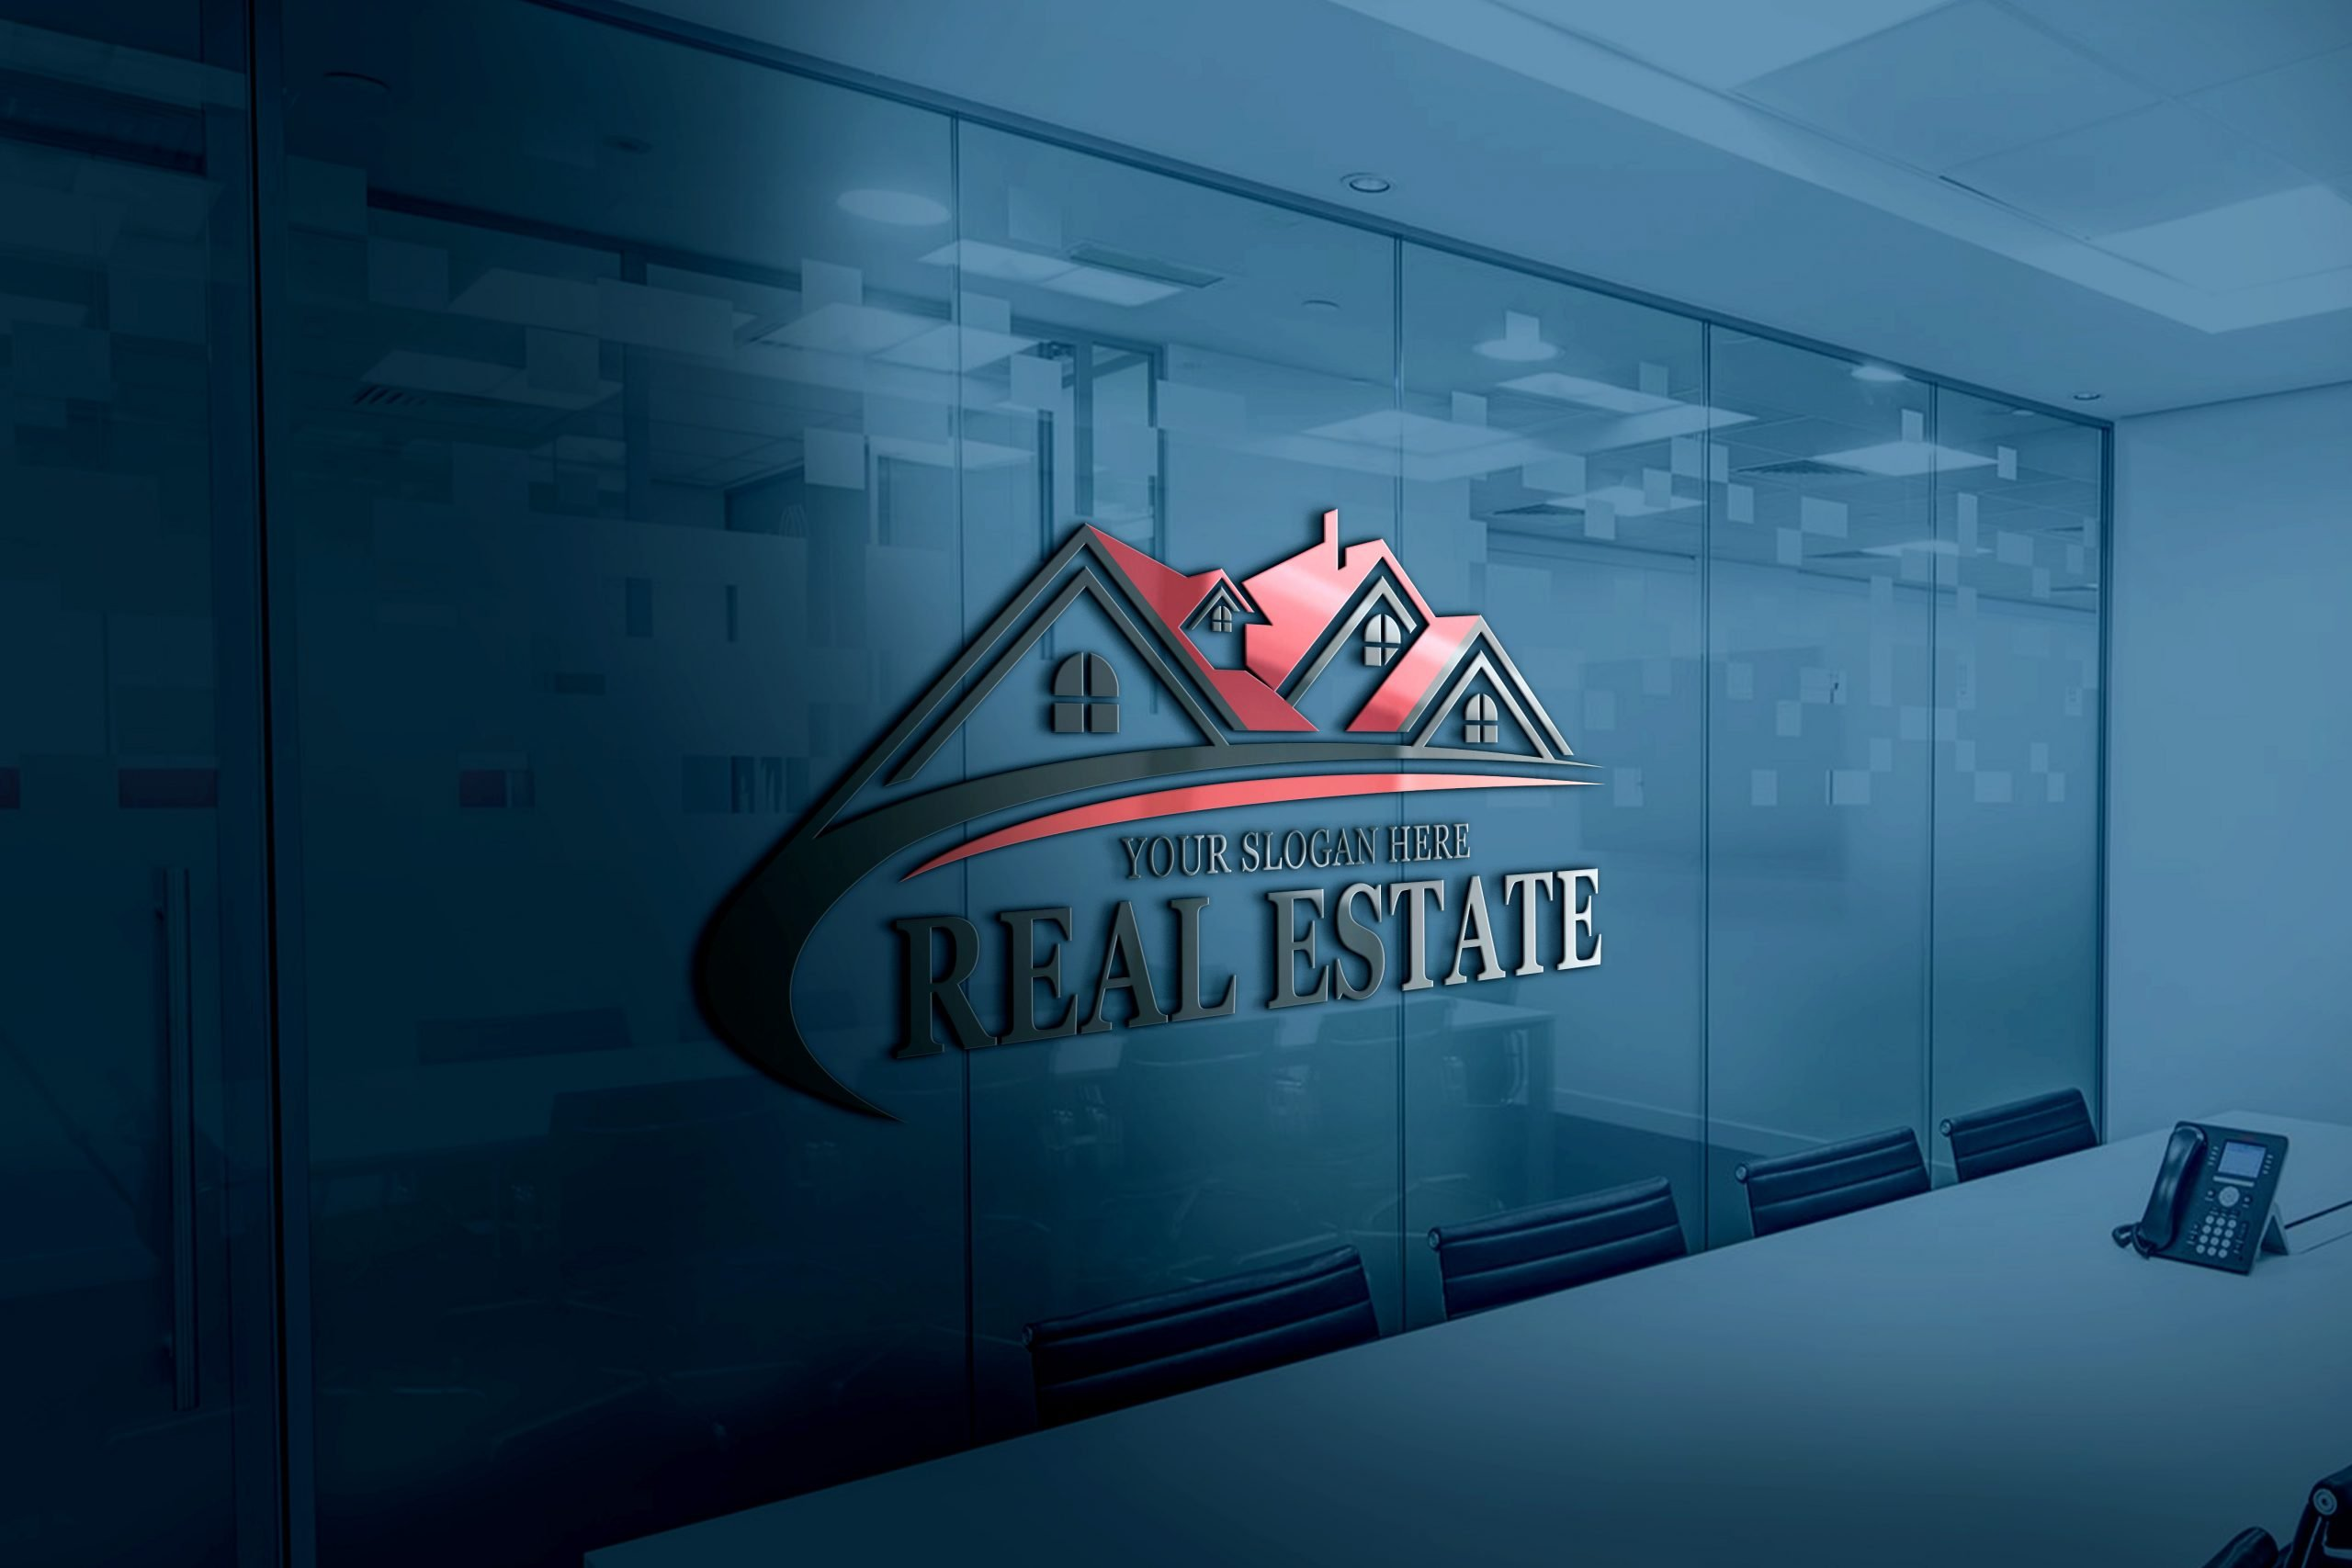 Real Estate Logo Design on office wall